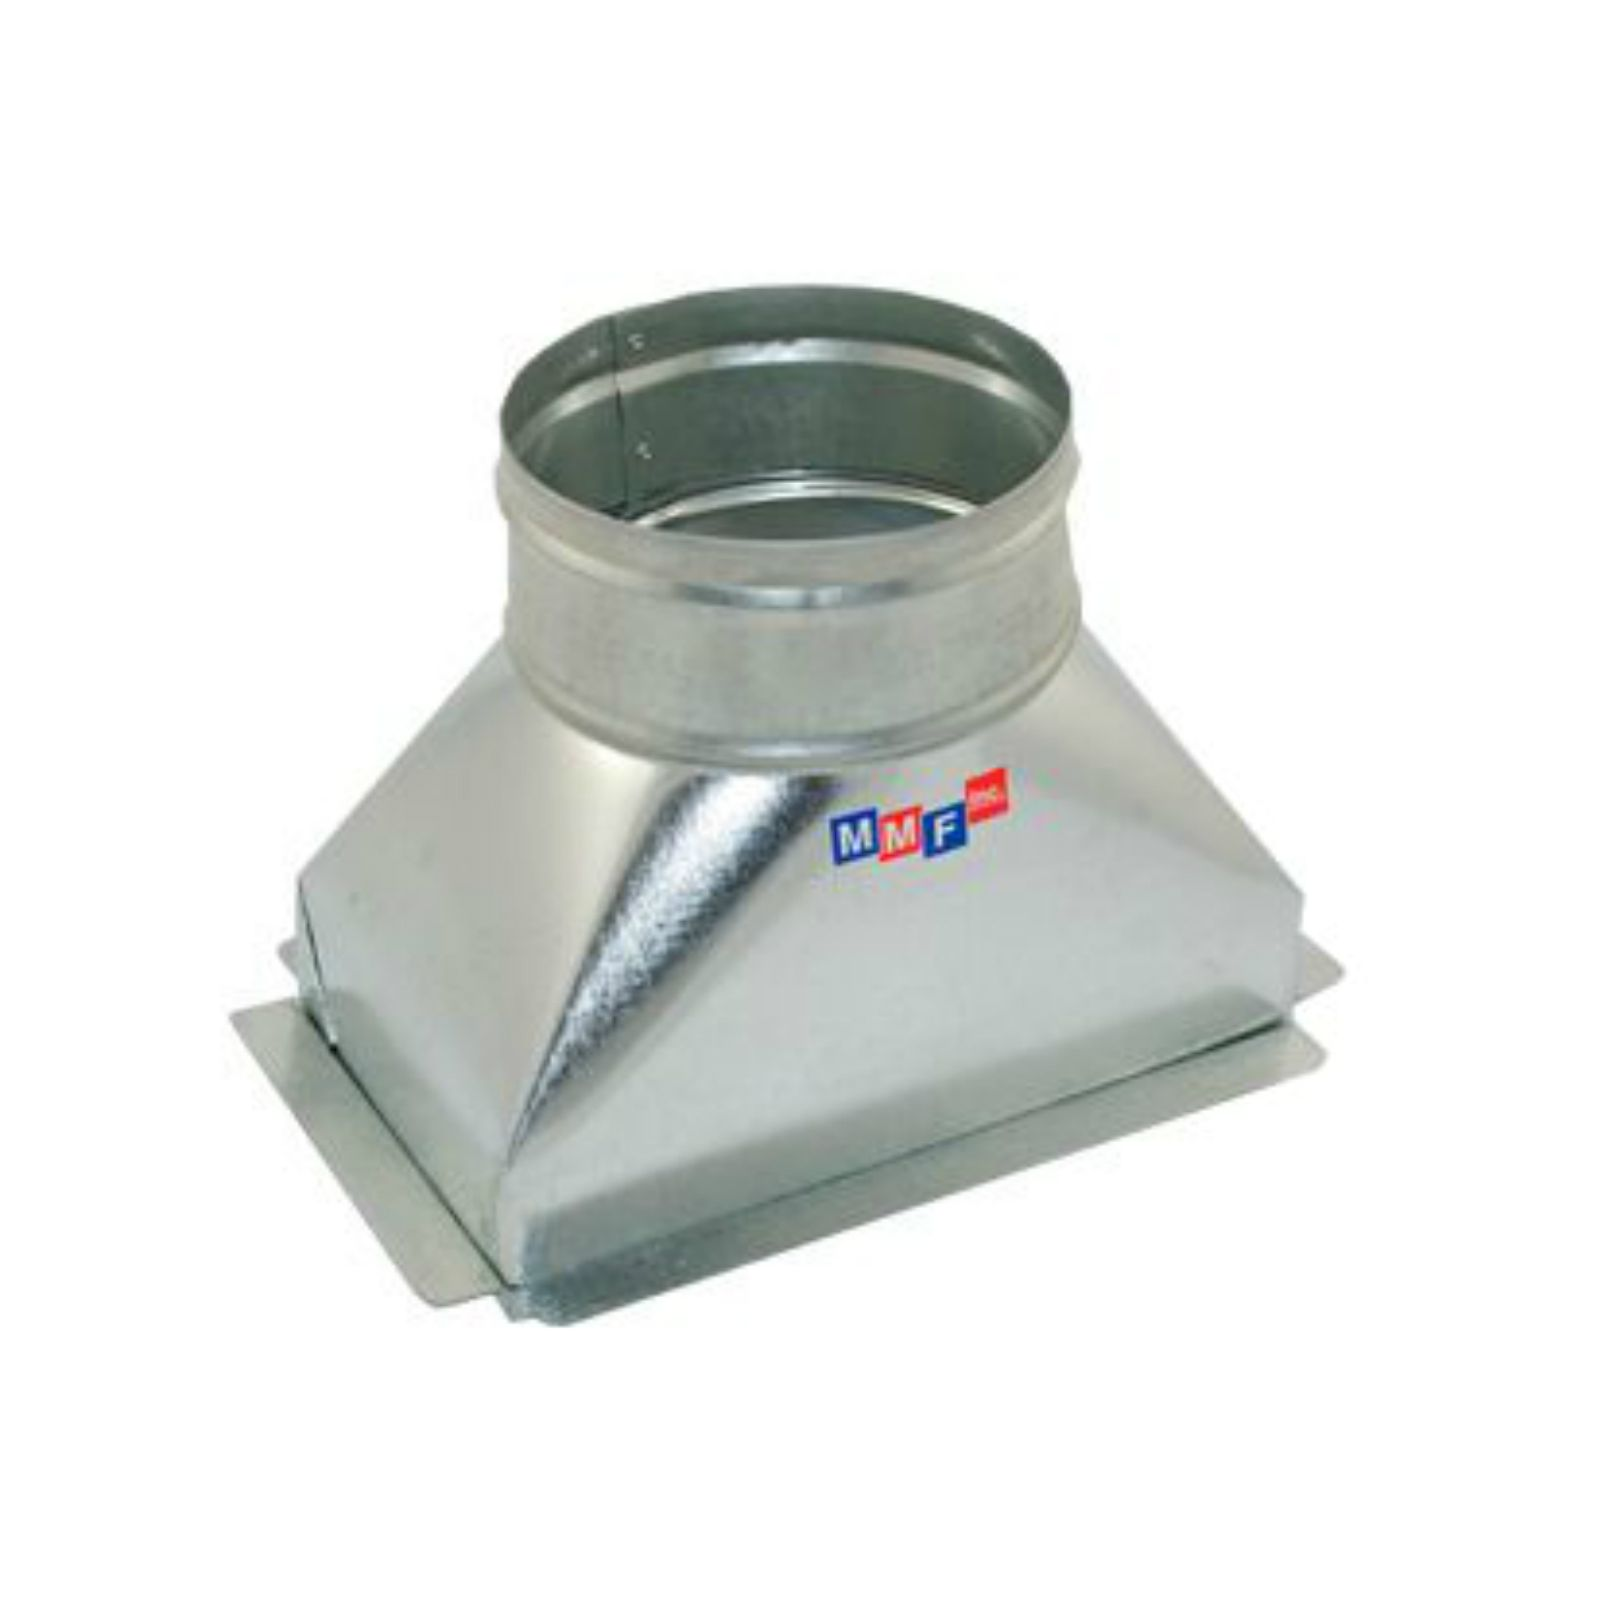 "Modular Metal BTSFG140407P - Sealed Floor Box - 30 Gauge - With Plaster Ground Flange 14"" X 04"" To 07"" Round"